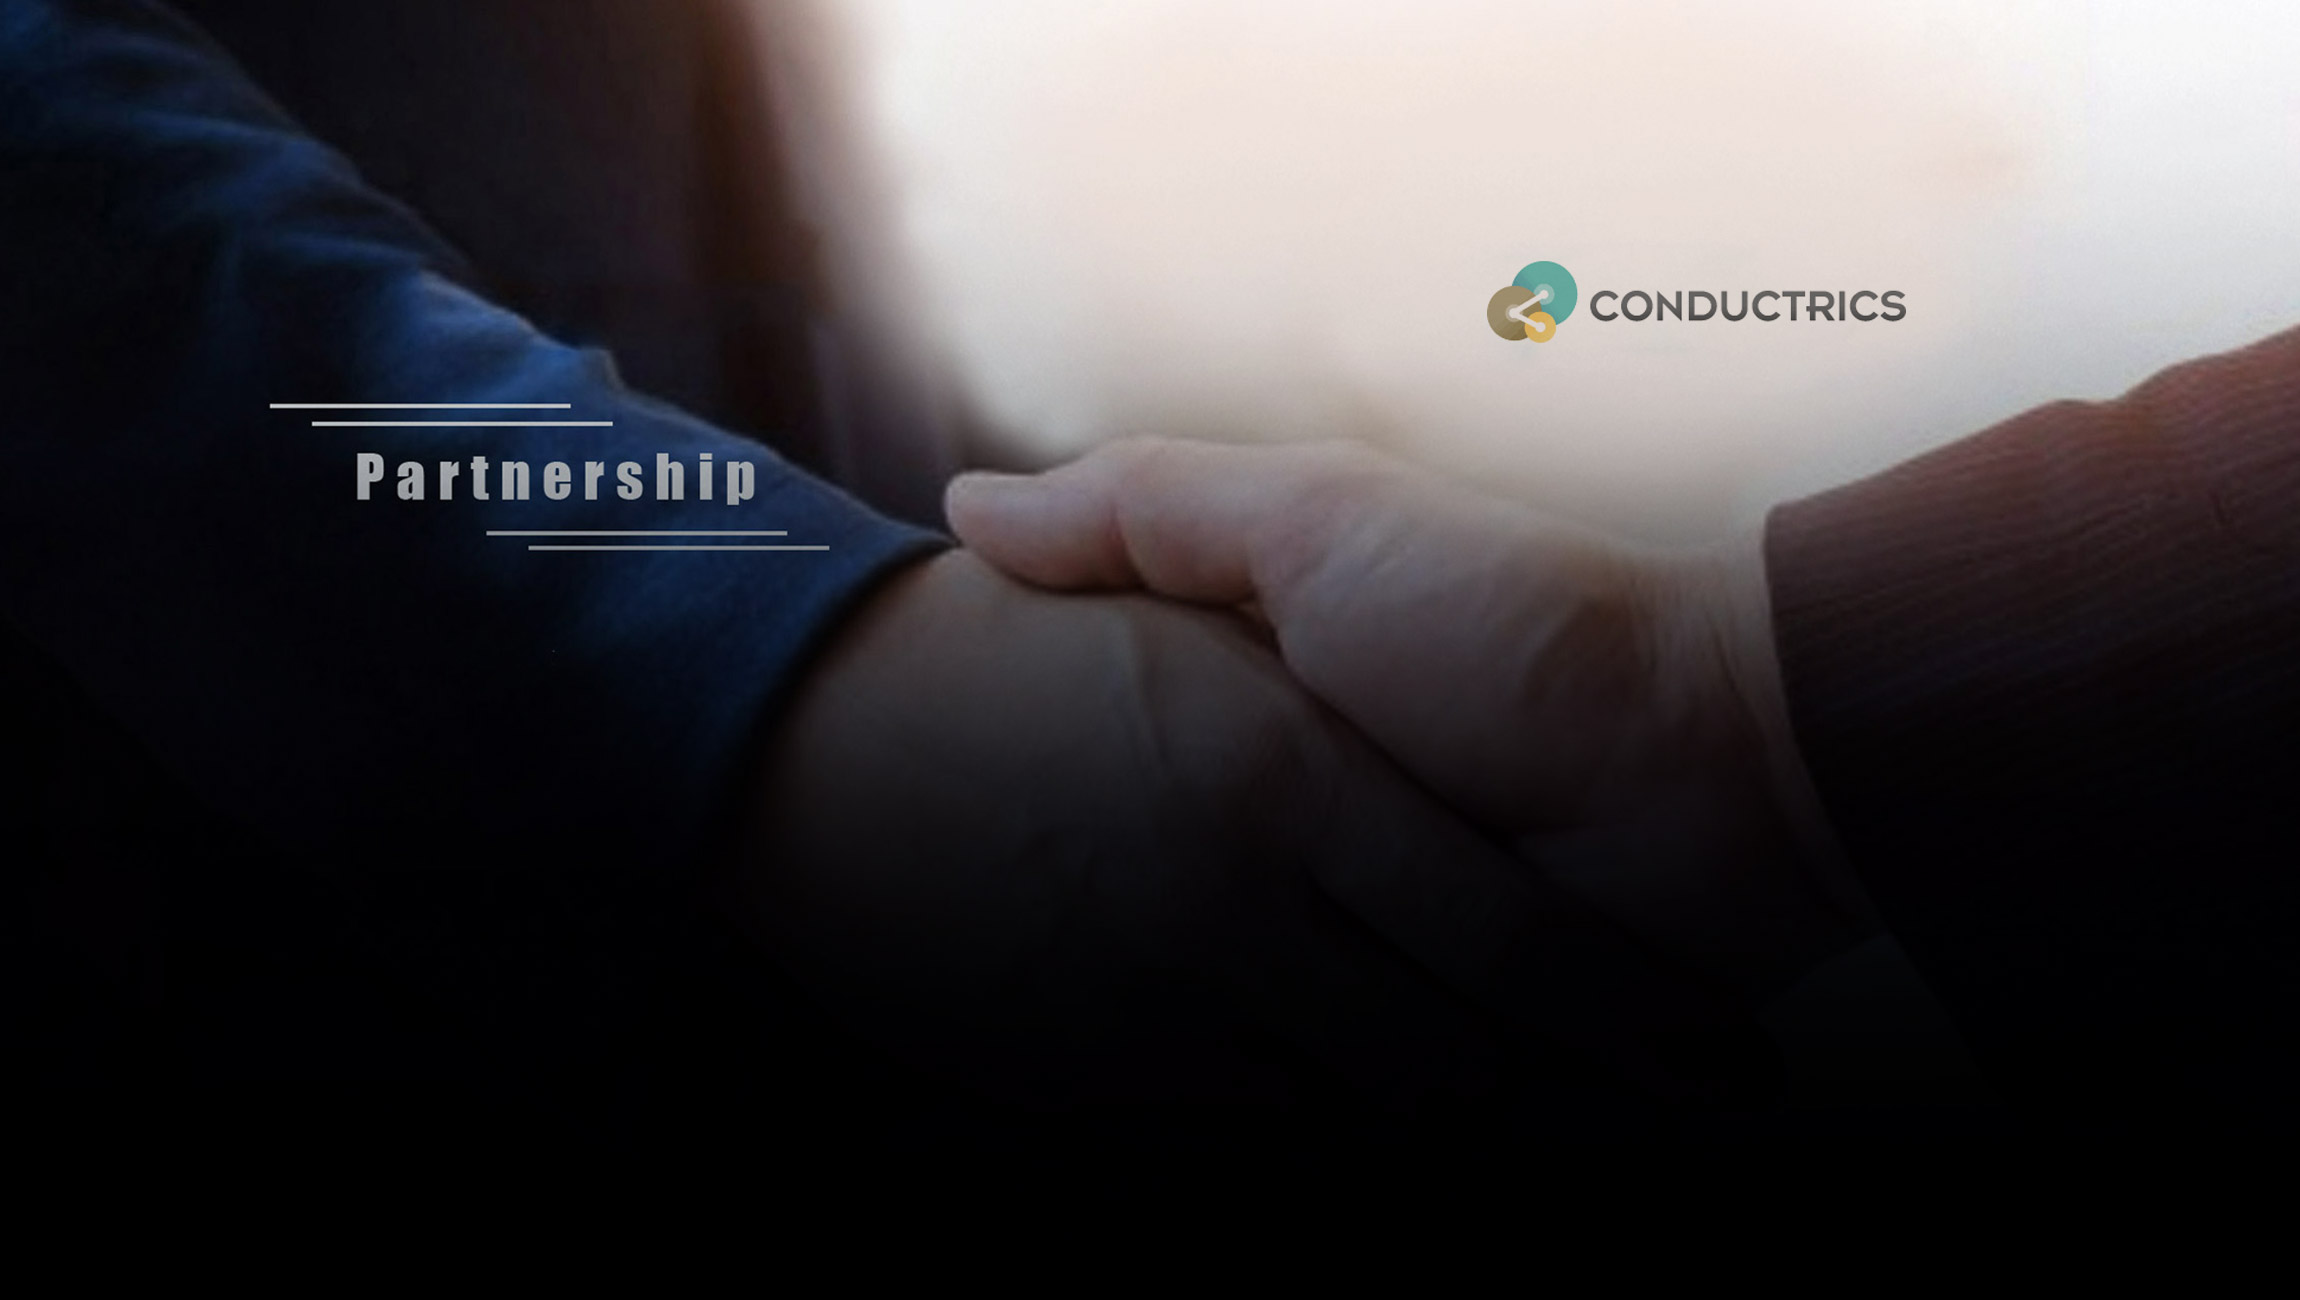 Conductrics-Announces-Search-Discovery-as-a-Premier-Partner